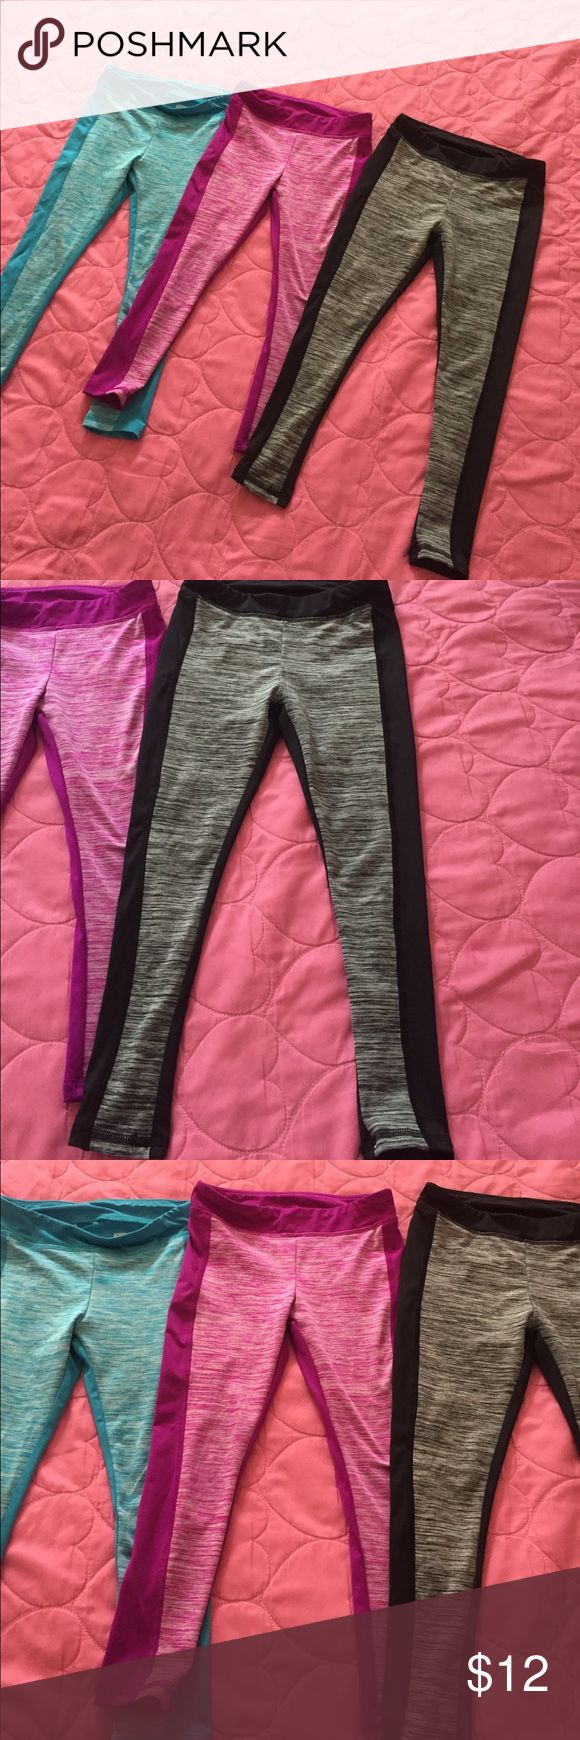 3 LITTLE GIRLS LAYER 8 LEGGINGS Used, but still in really good shape, no tears, rips, or stains, super light and comfortable. Colors, Black/Gray, Purple/Fuchsia, Blue LAYER 8 Bottoms Leggings